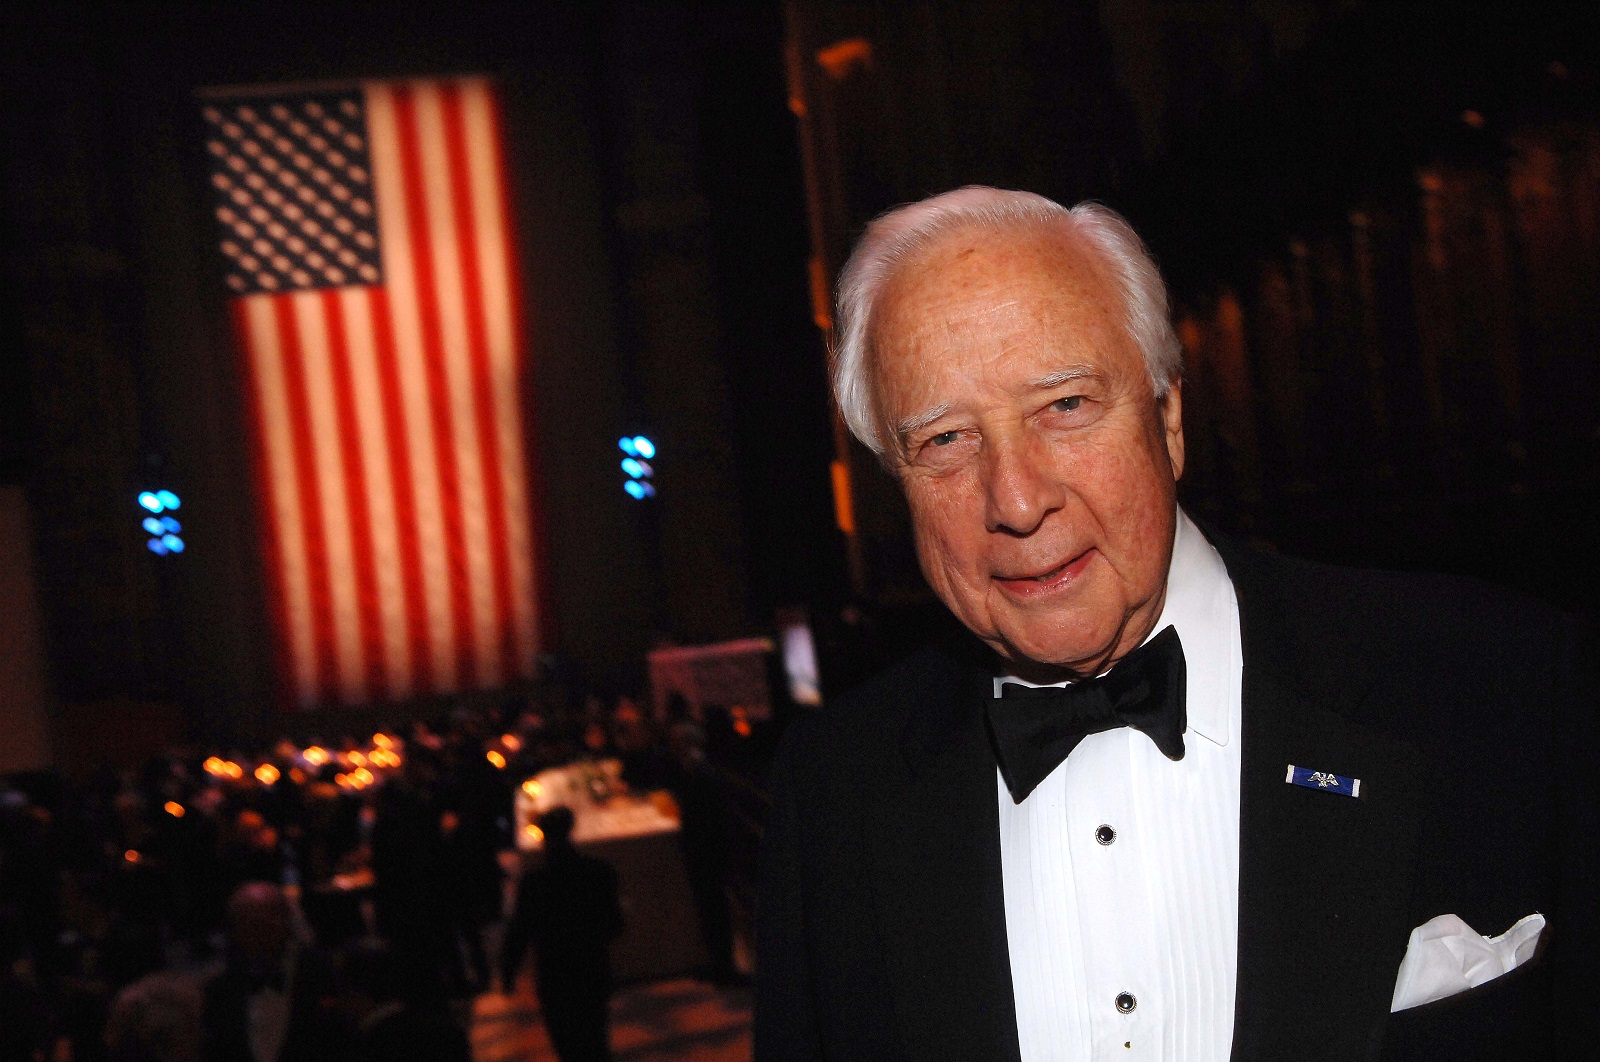 David McCullough poses for a picture at the History Makers Gala at the Cathedral of St. John the Divine in 2007 in New York City. (Brad Barket/Getty Images for New York Historical Society)